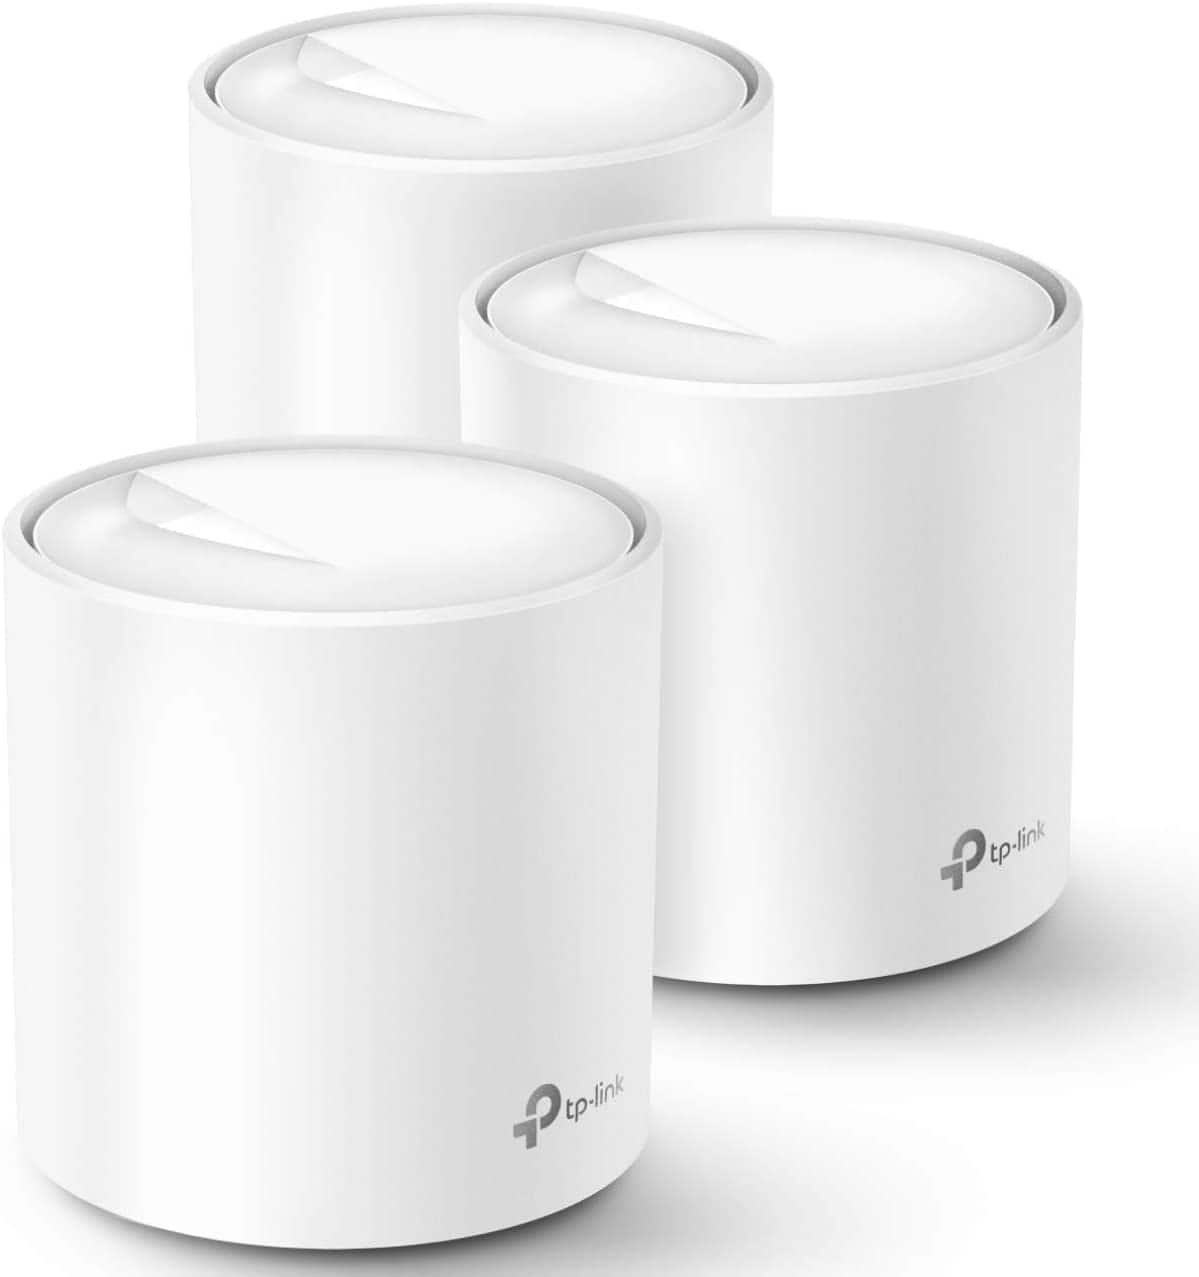 $200 - TP-Link Deco WiFi 6 Mesh System(Deco X20) 3 Pack